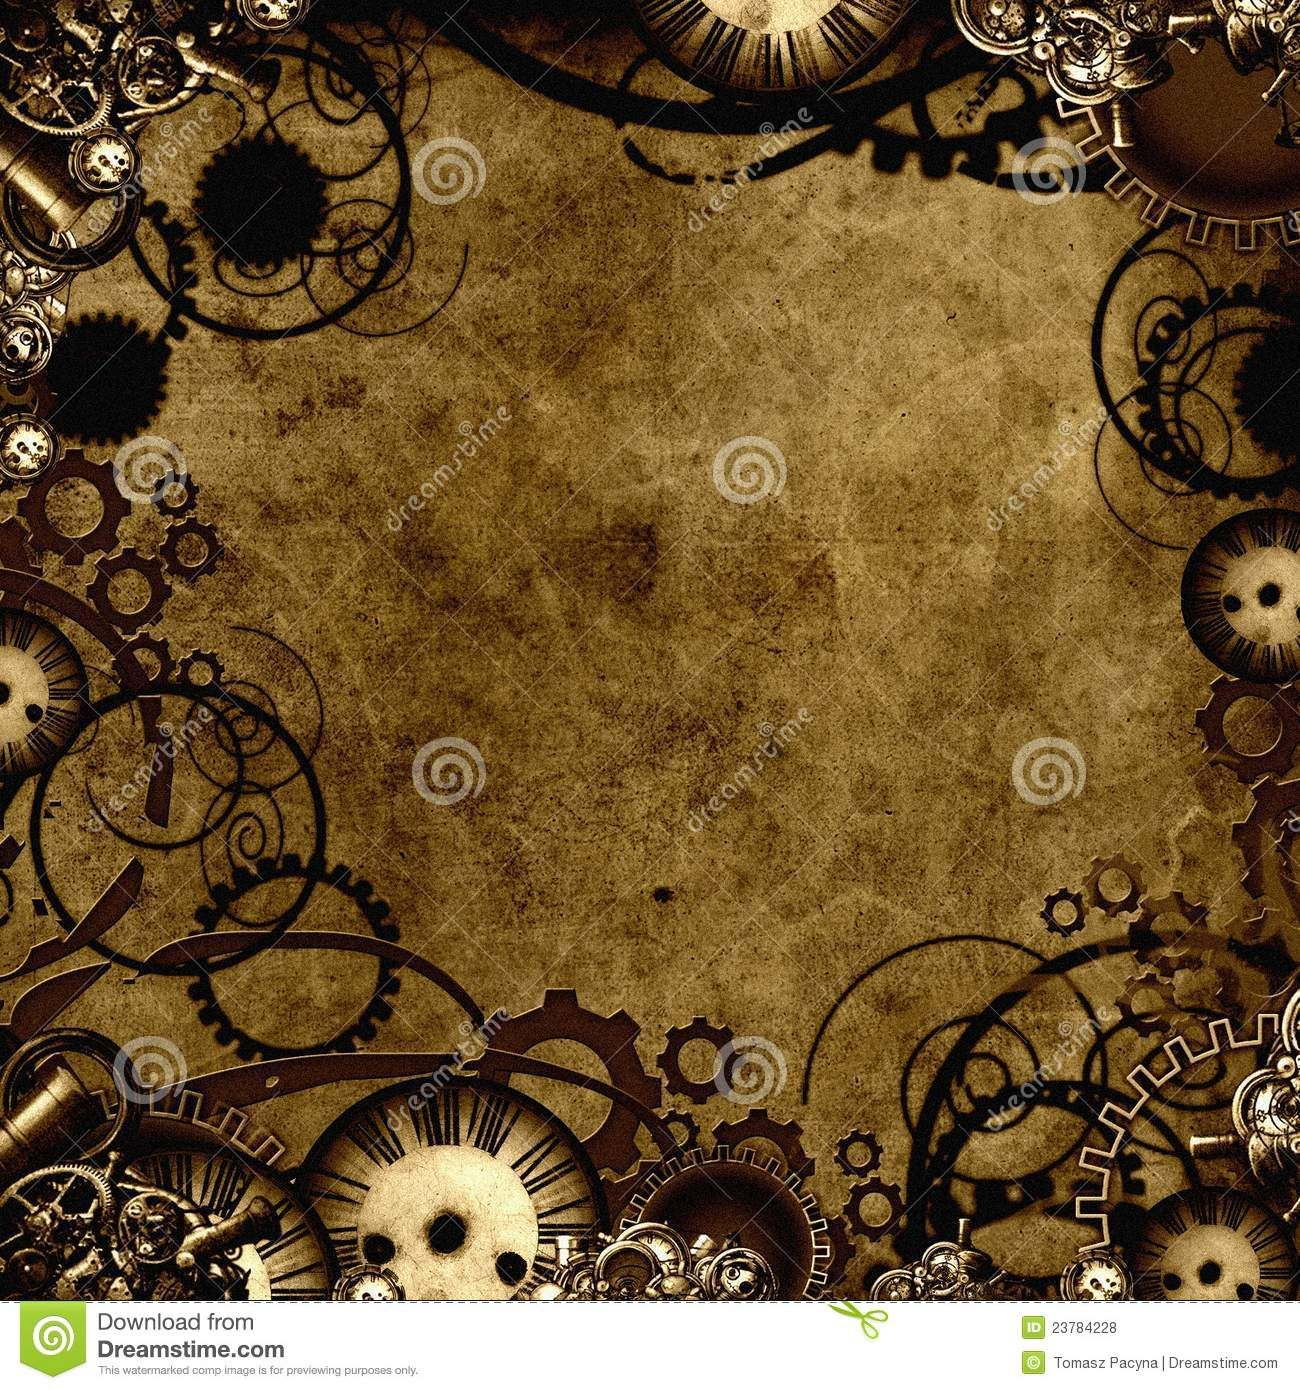 Steampunk Background Texture - Over 39